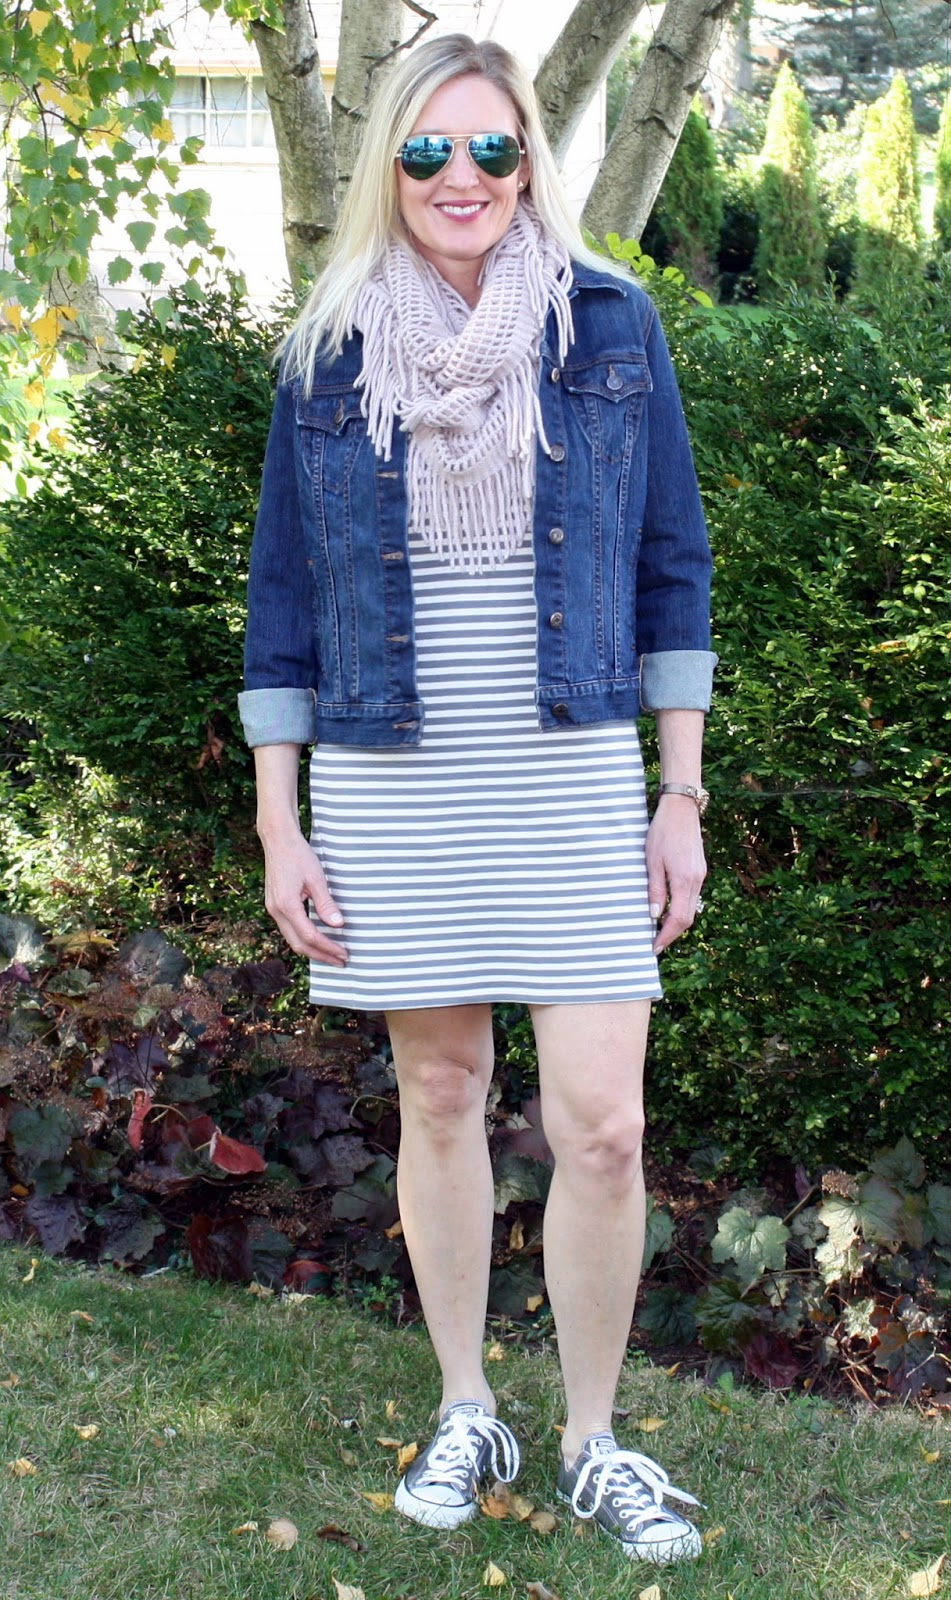 Everyone needs a striped dress in their wardrobe. Inspiration on how to wear a striped dress three ways!